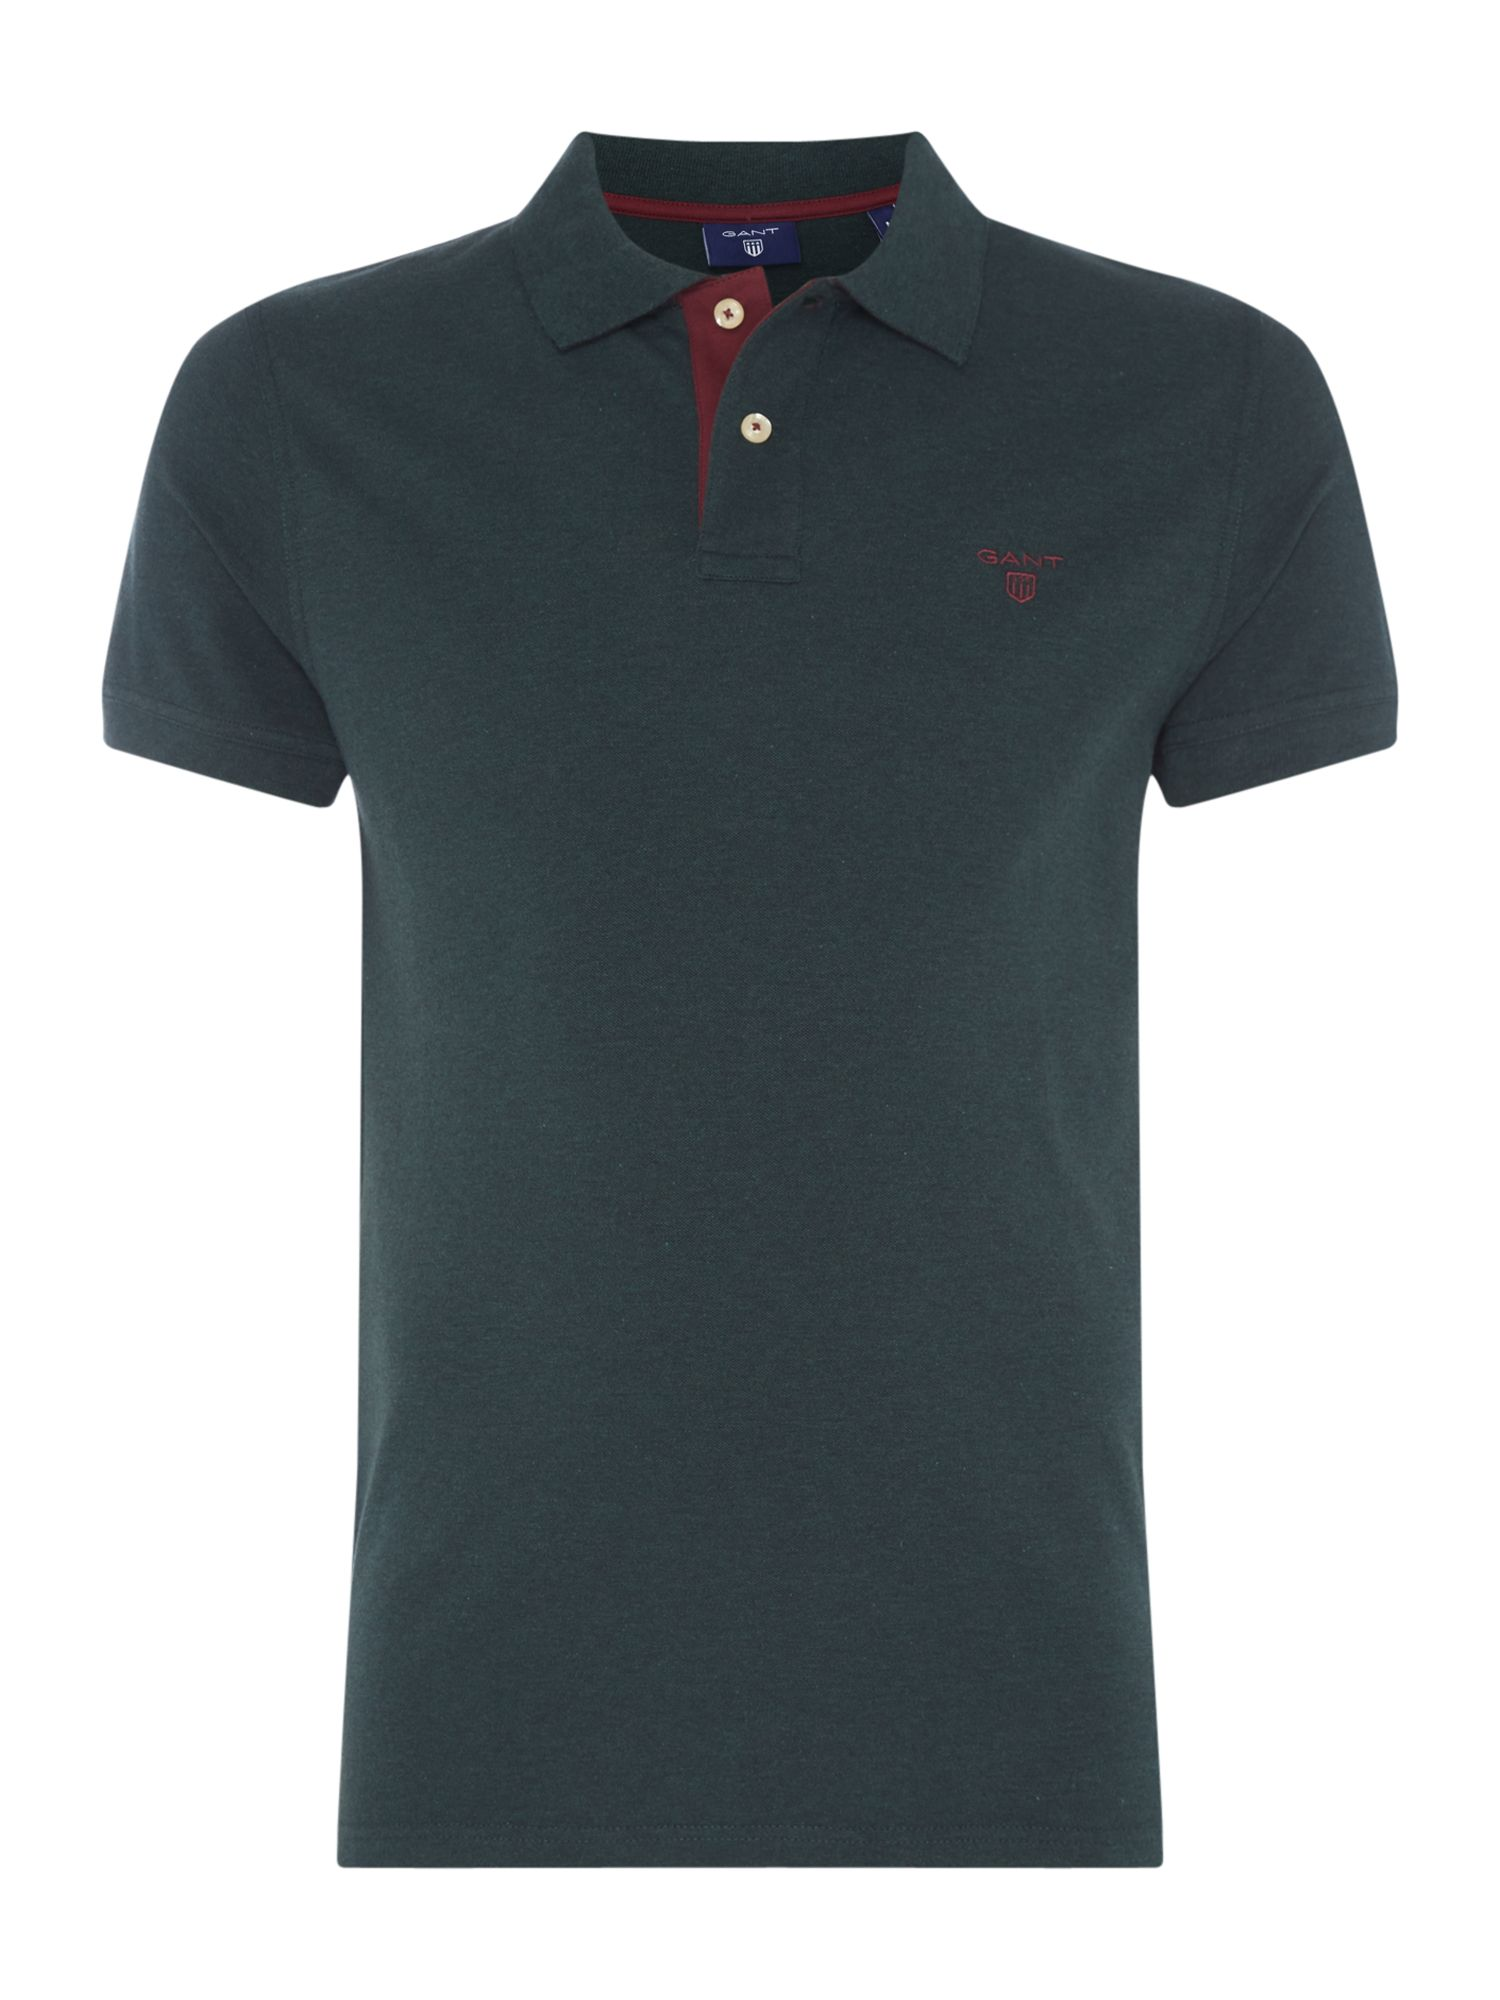 Men's Gant Contrast Collar Polo Shirt, Dark Green